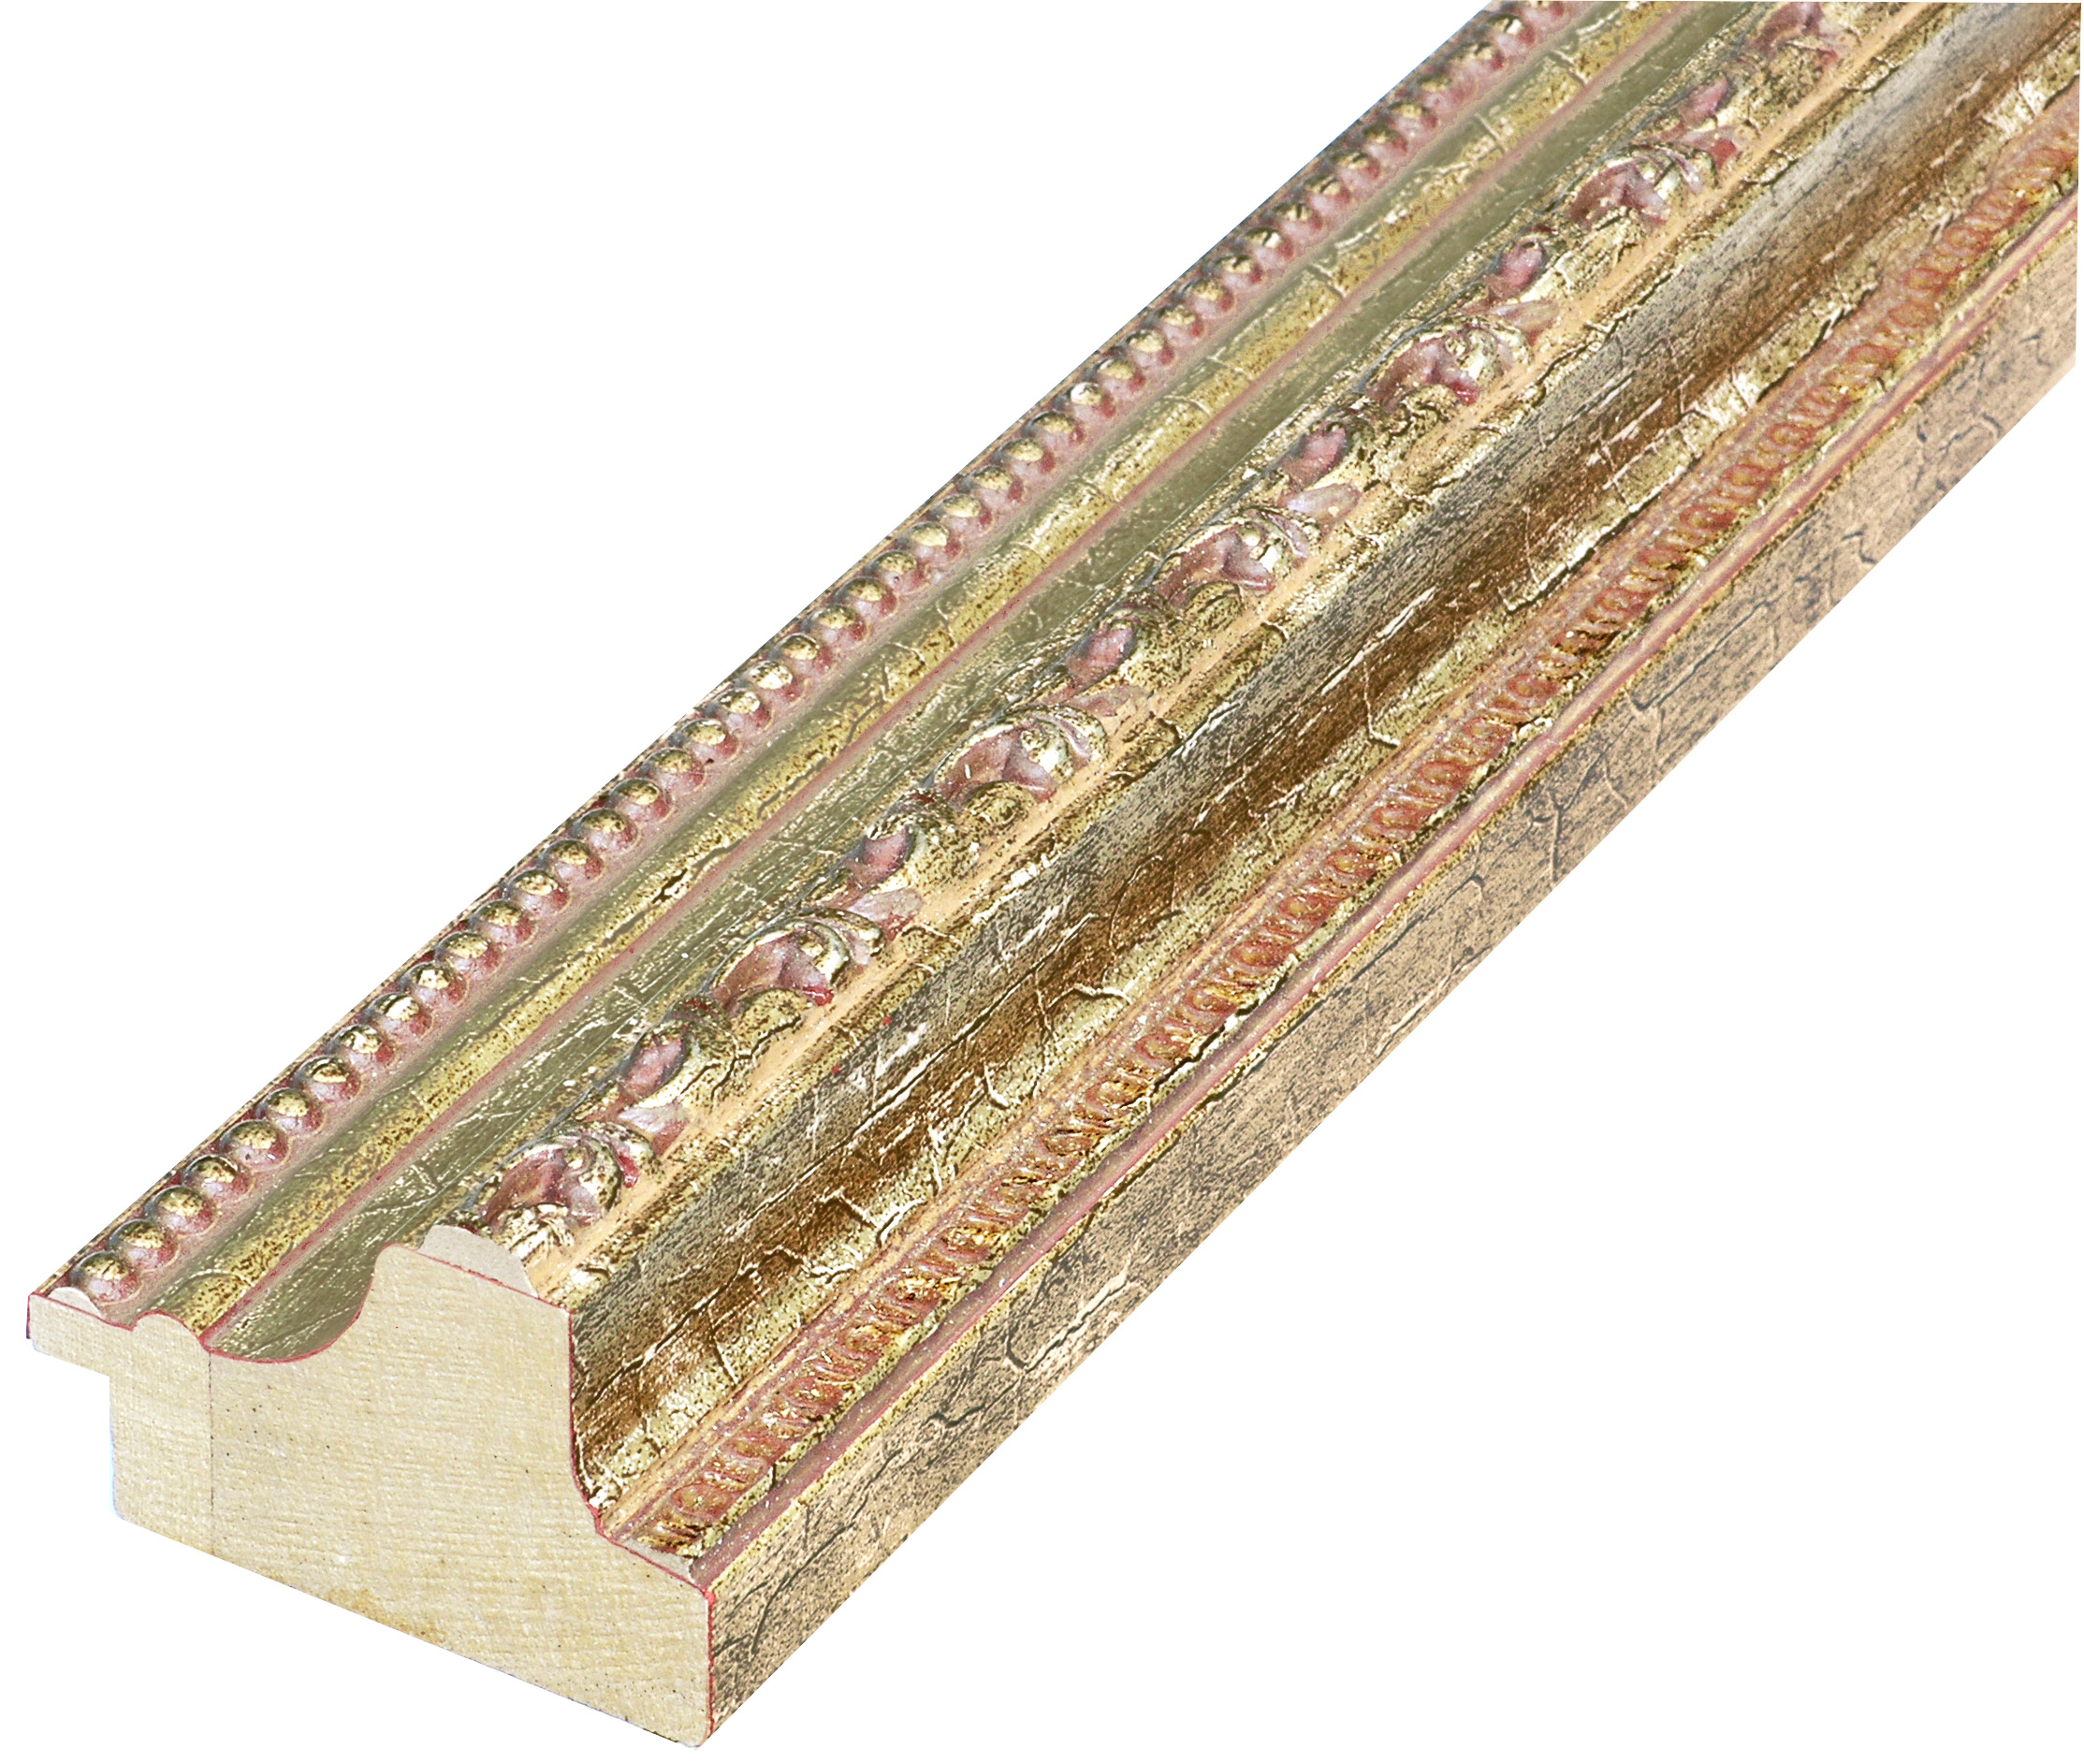 Moulding ayous - width 53mm height 35 - gold with decorations